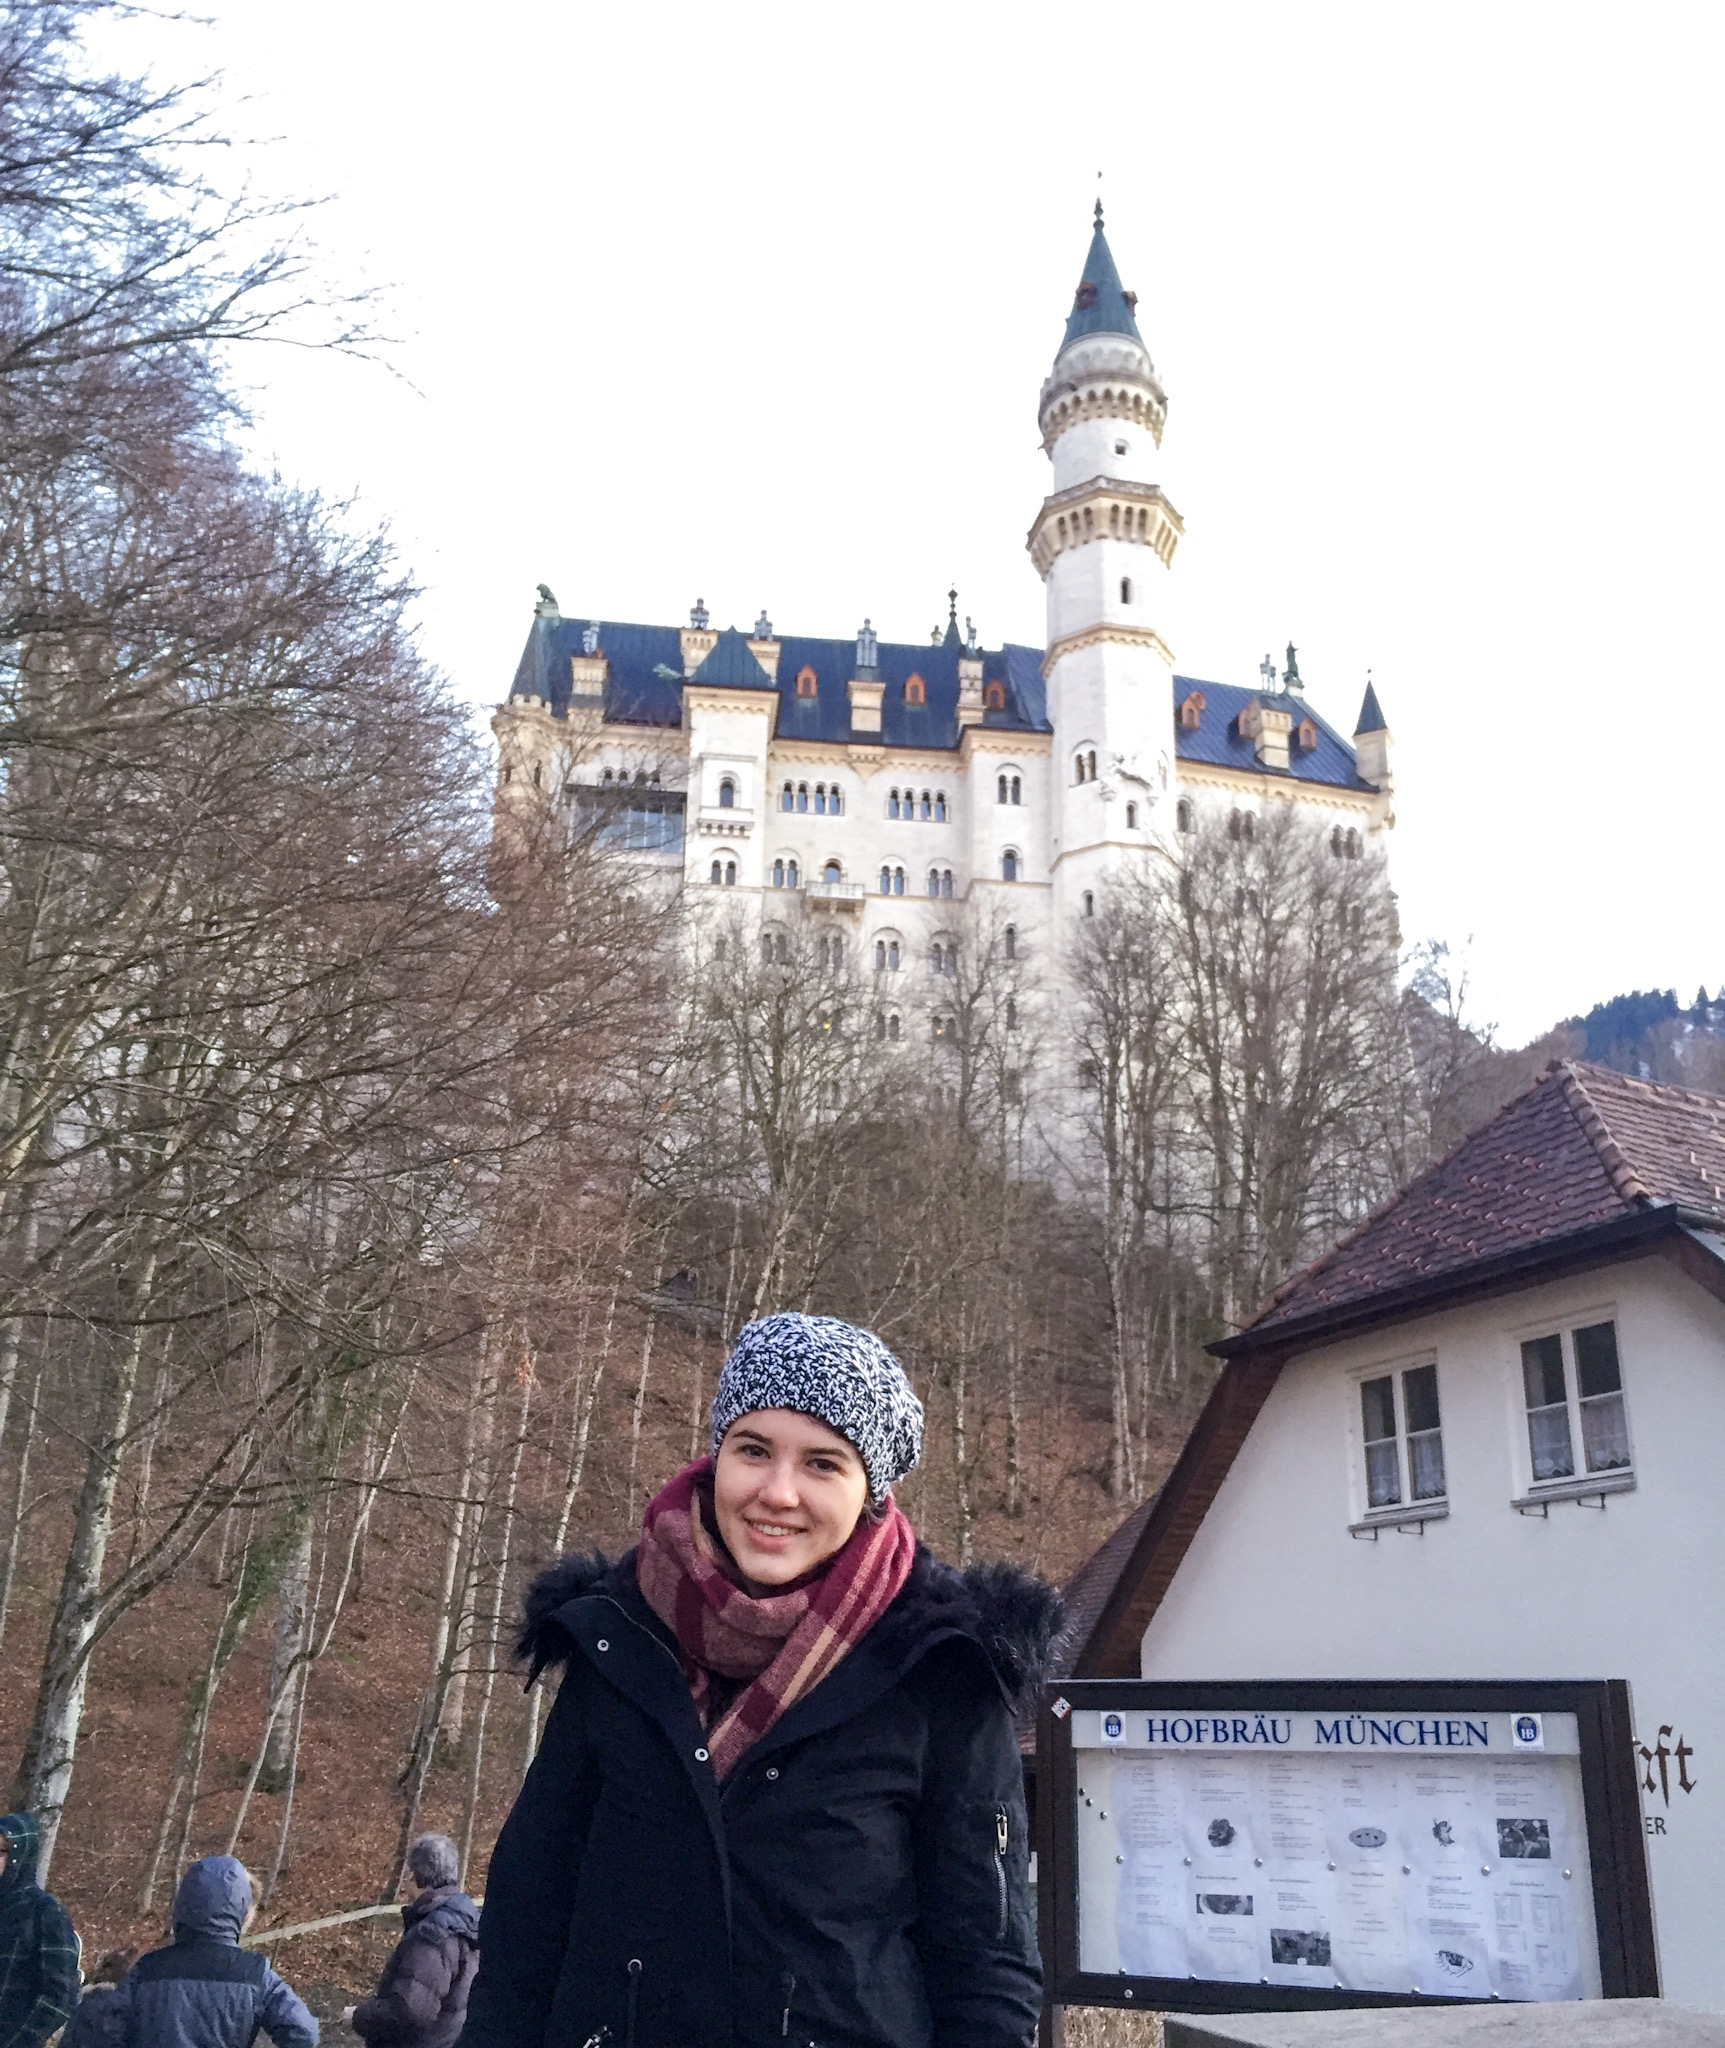 Me standing in front of Neuschwanstein Castle